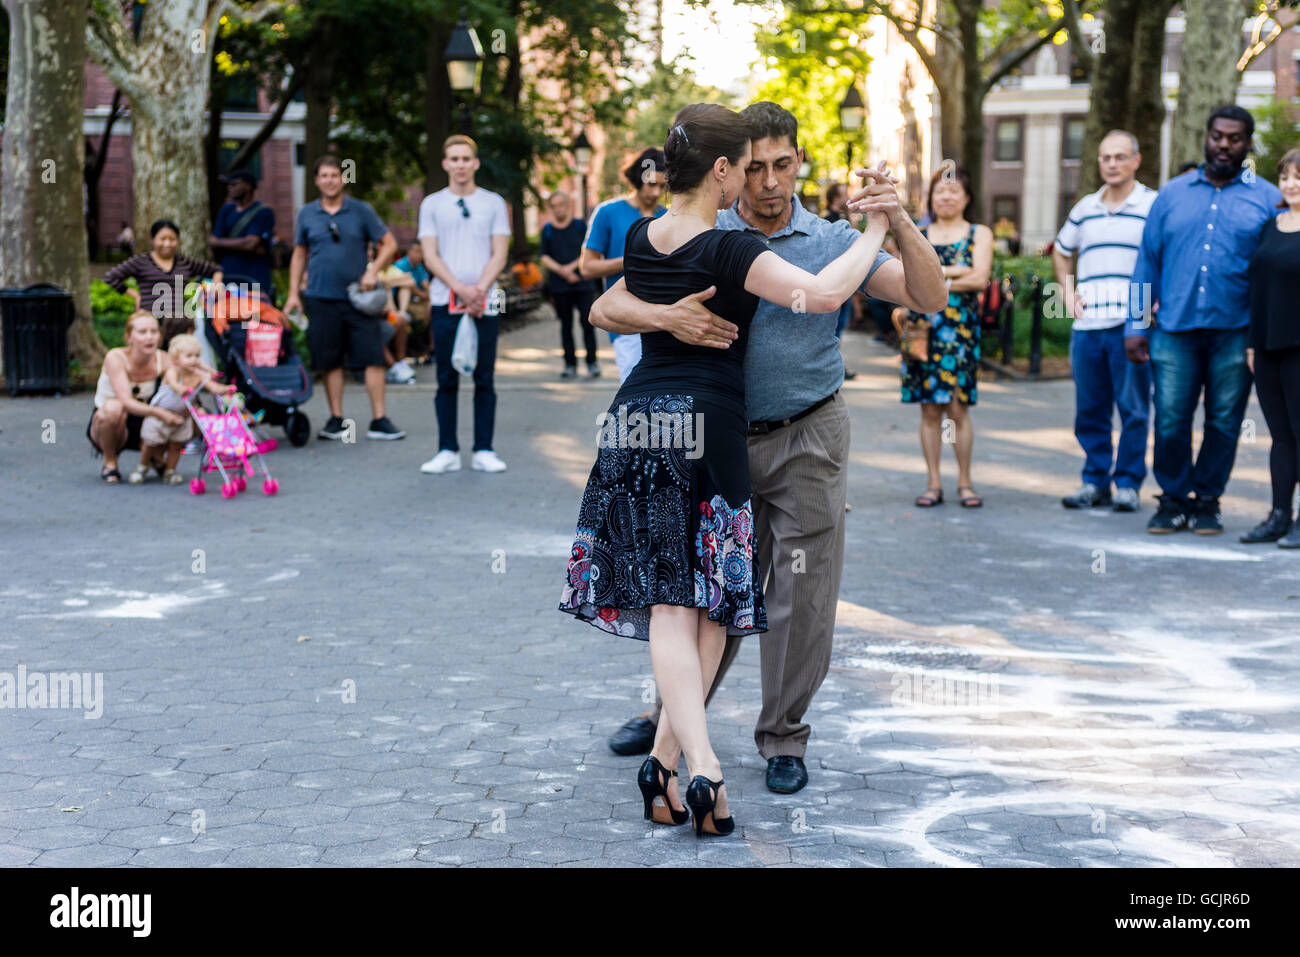 New York, NY - Adults of all ages learn to tango in Washington Square Park. ©Stacy Walsh Rosenstock /Alamy - Stock Image